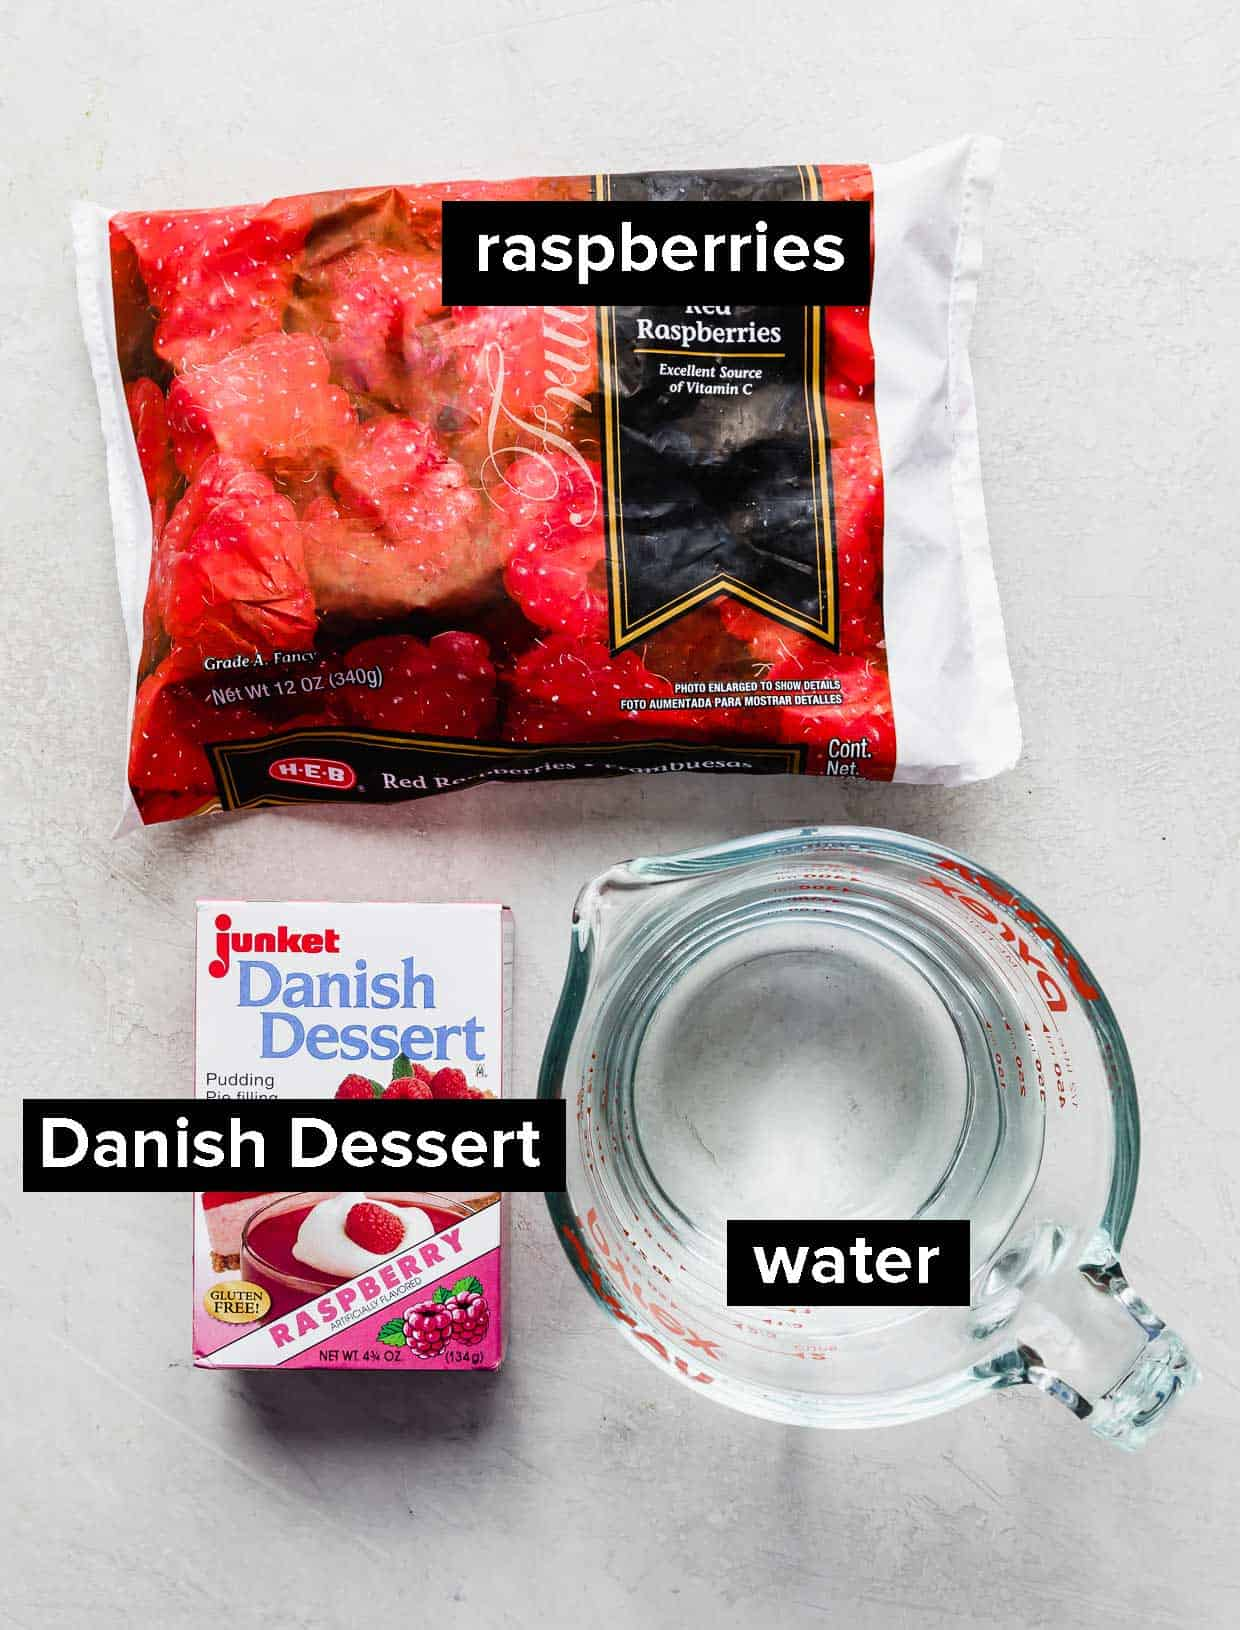 A bag of frozen raspberries, box of Danish Dessert, and water on a gray background.